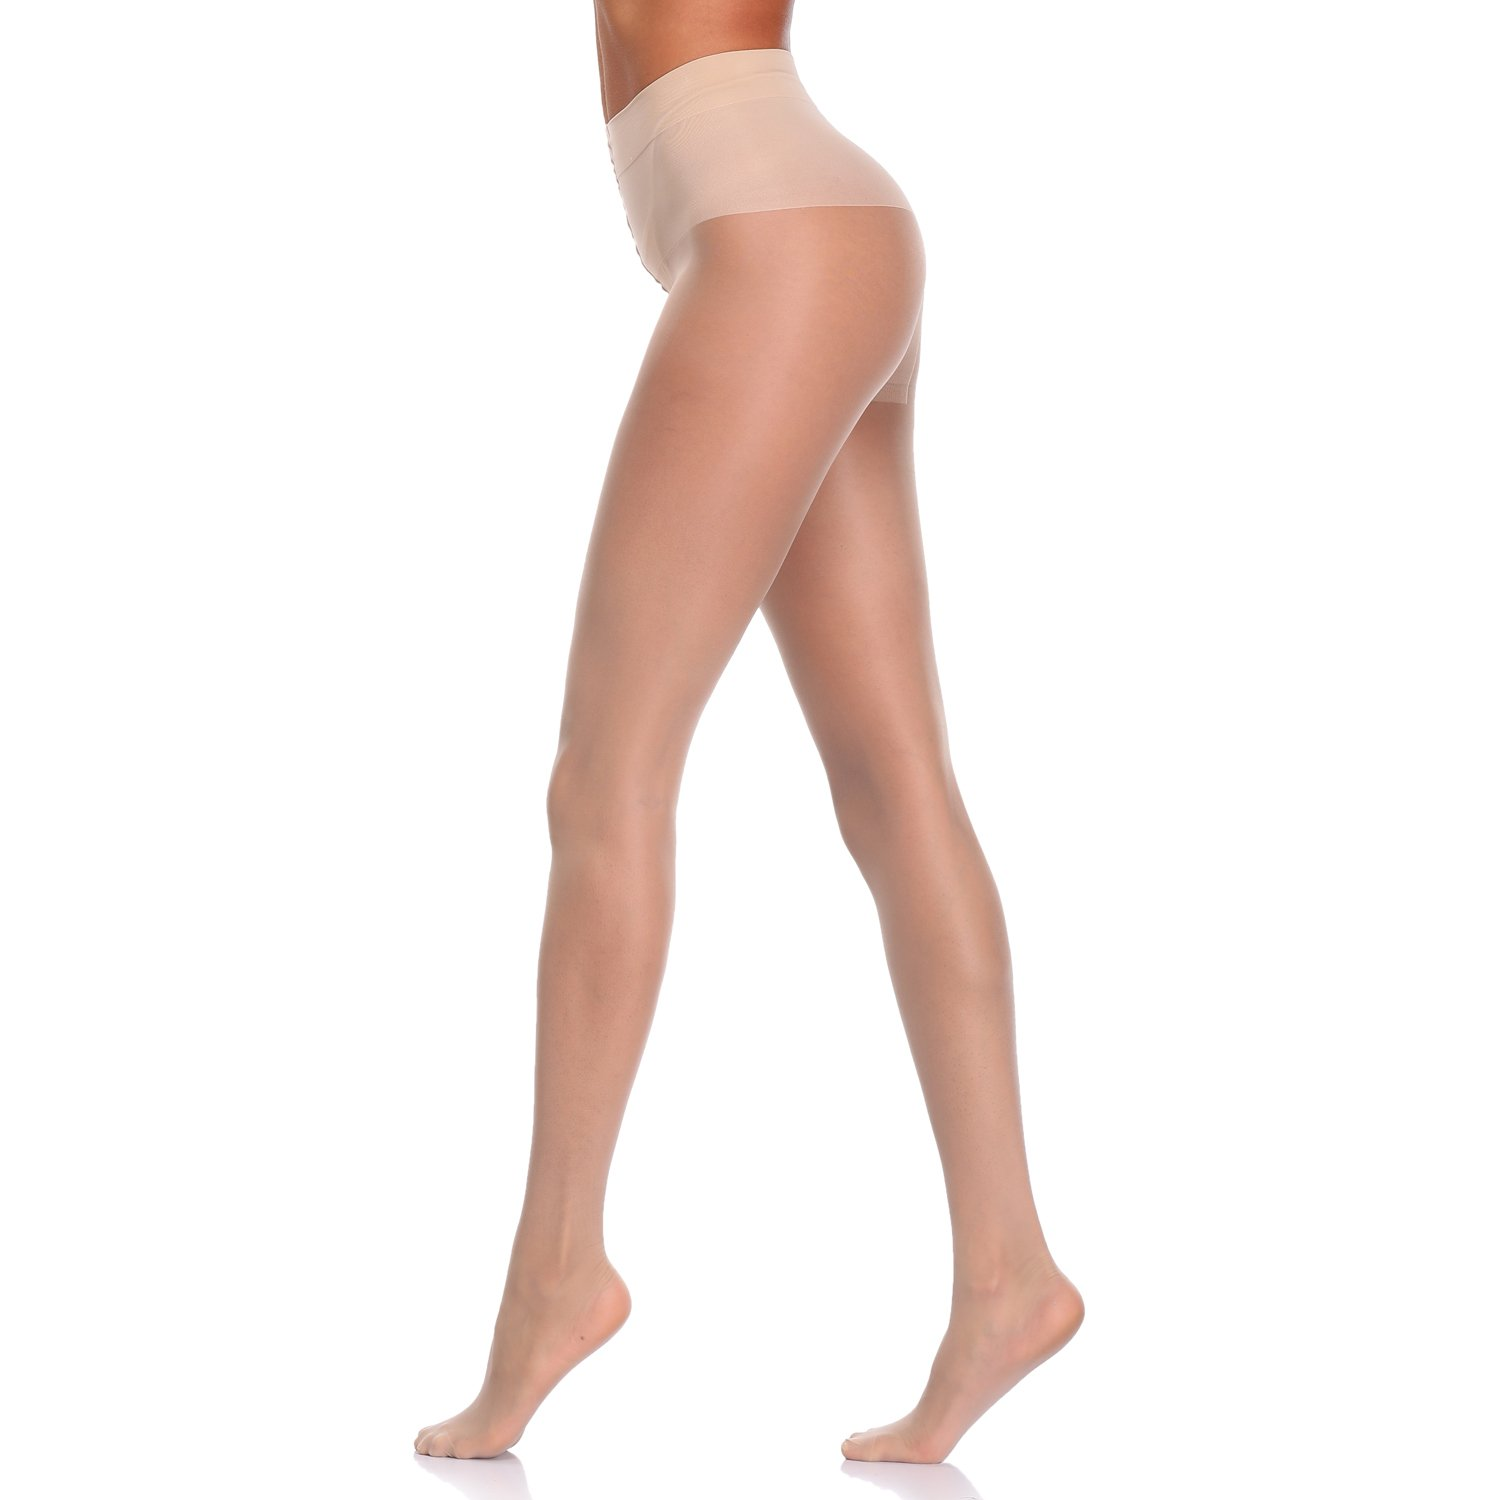 5465ae8976f ✅Sunshine   UV Protection✅ -- Womens sheer tights make for a light fabric  that you barely feel against your skin. Classic Pantyhose can prevent your  skin ...